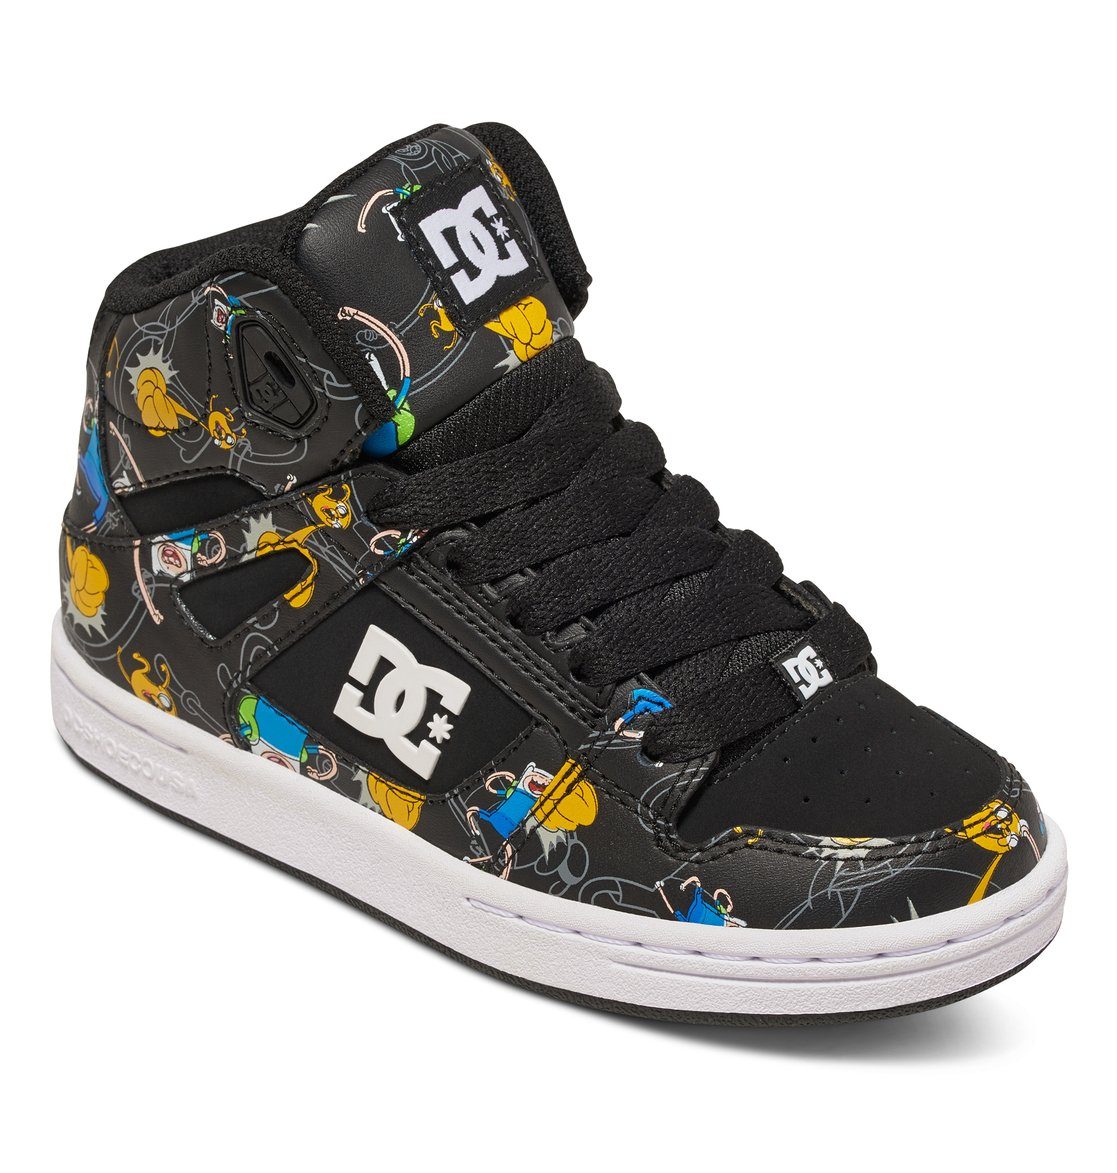 DC DC Kid's Rebound X AT Skate Sneakers Multi Leather 3.5 Big Kid M